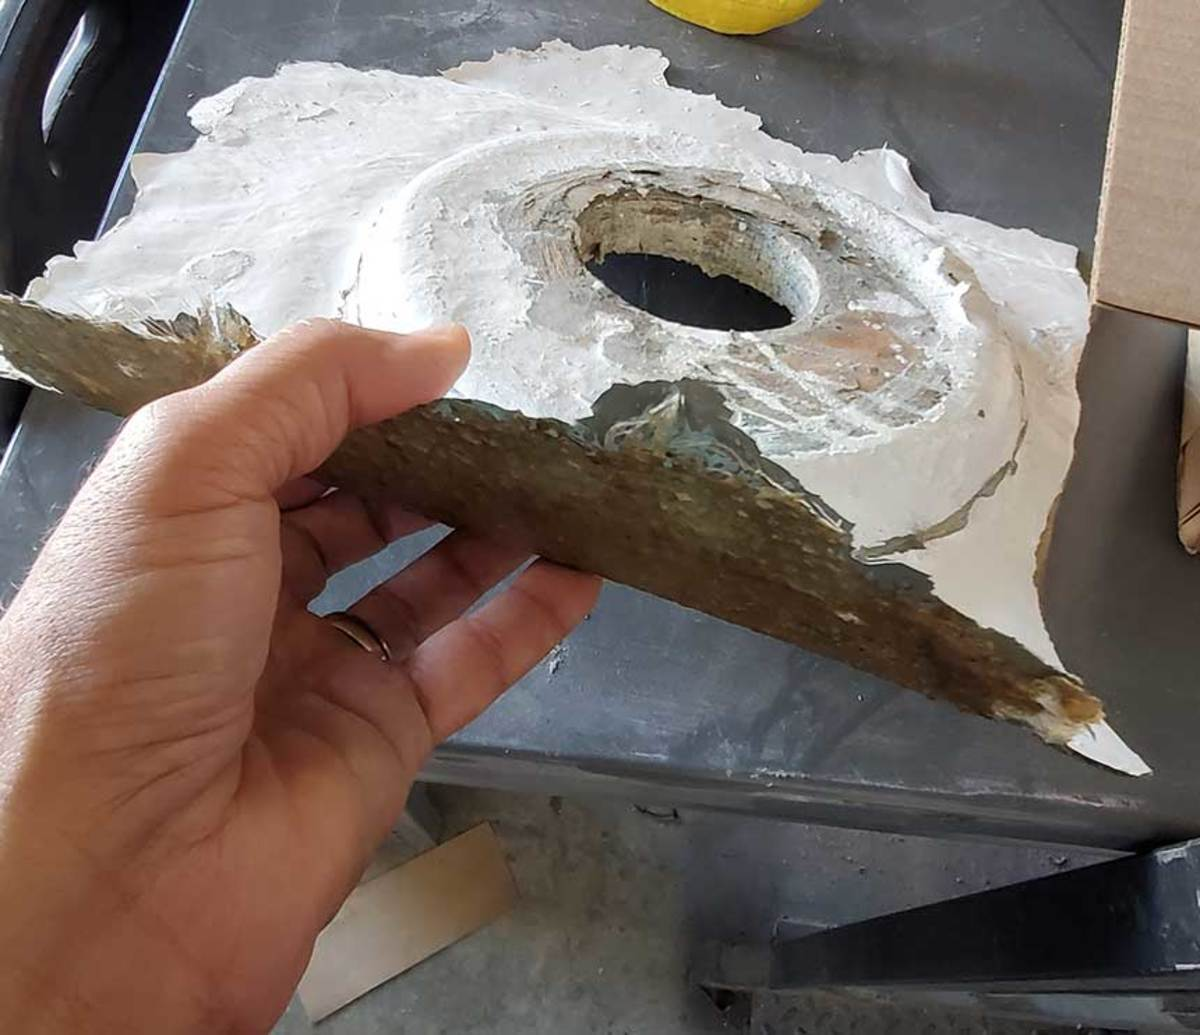 Polyester resin does not bond reliably to cured polyester. This part popped loose from the hull due to a failed bond, as a result of a poor resin choice and poor preparation.